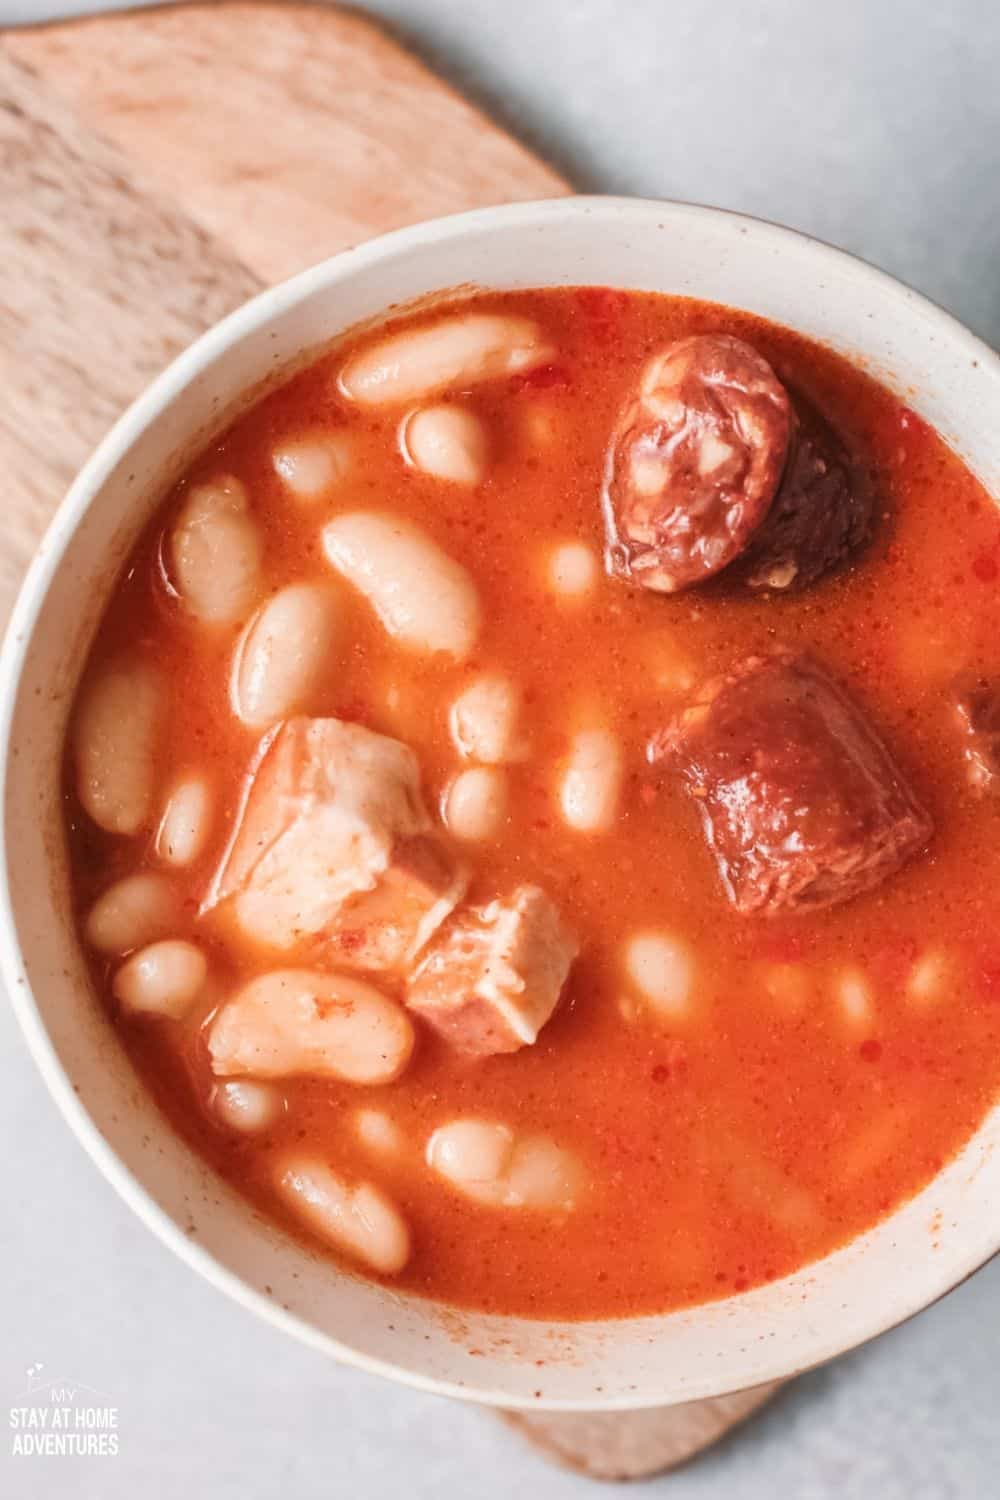 This delicious and hearty Fabada served in a bowl with all those flavorful meat is so comforting especially when served during the cold season. #soup #spanishsoup #fabada via @mystayathome